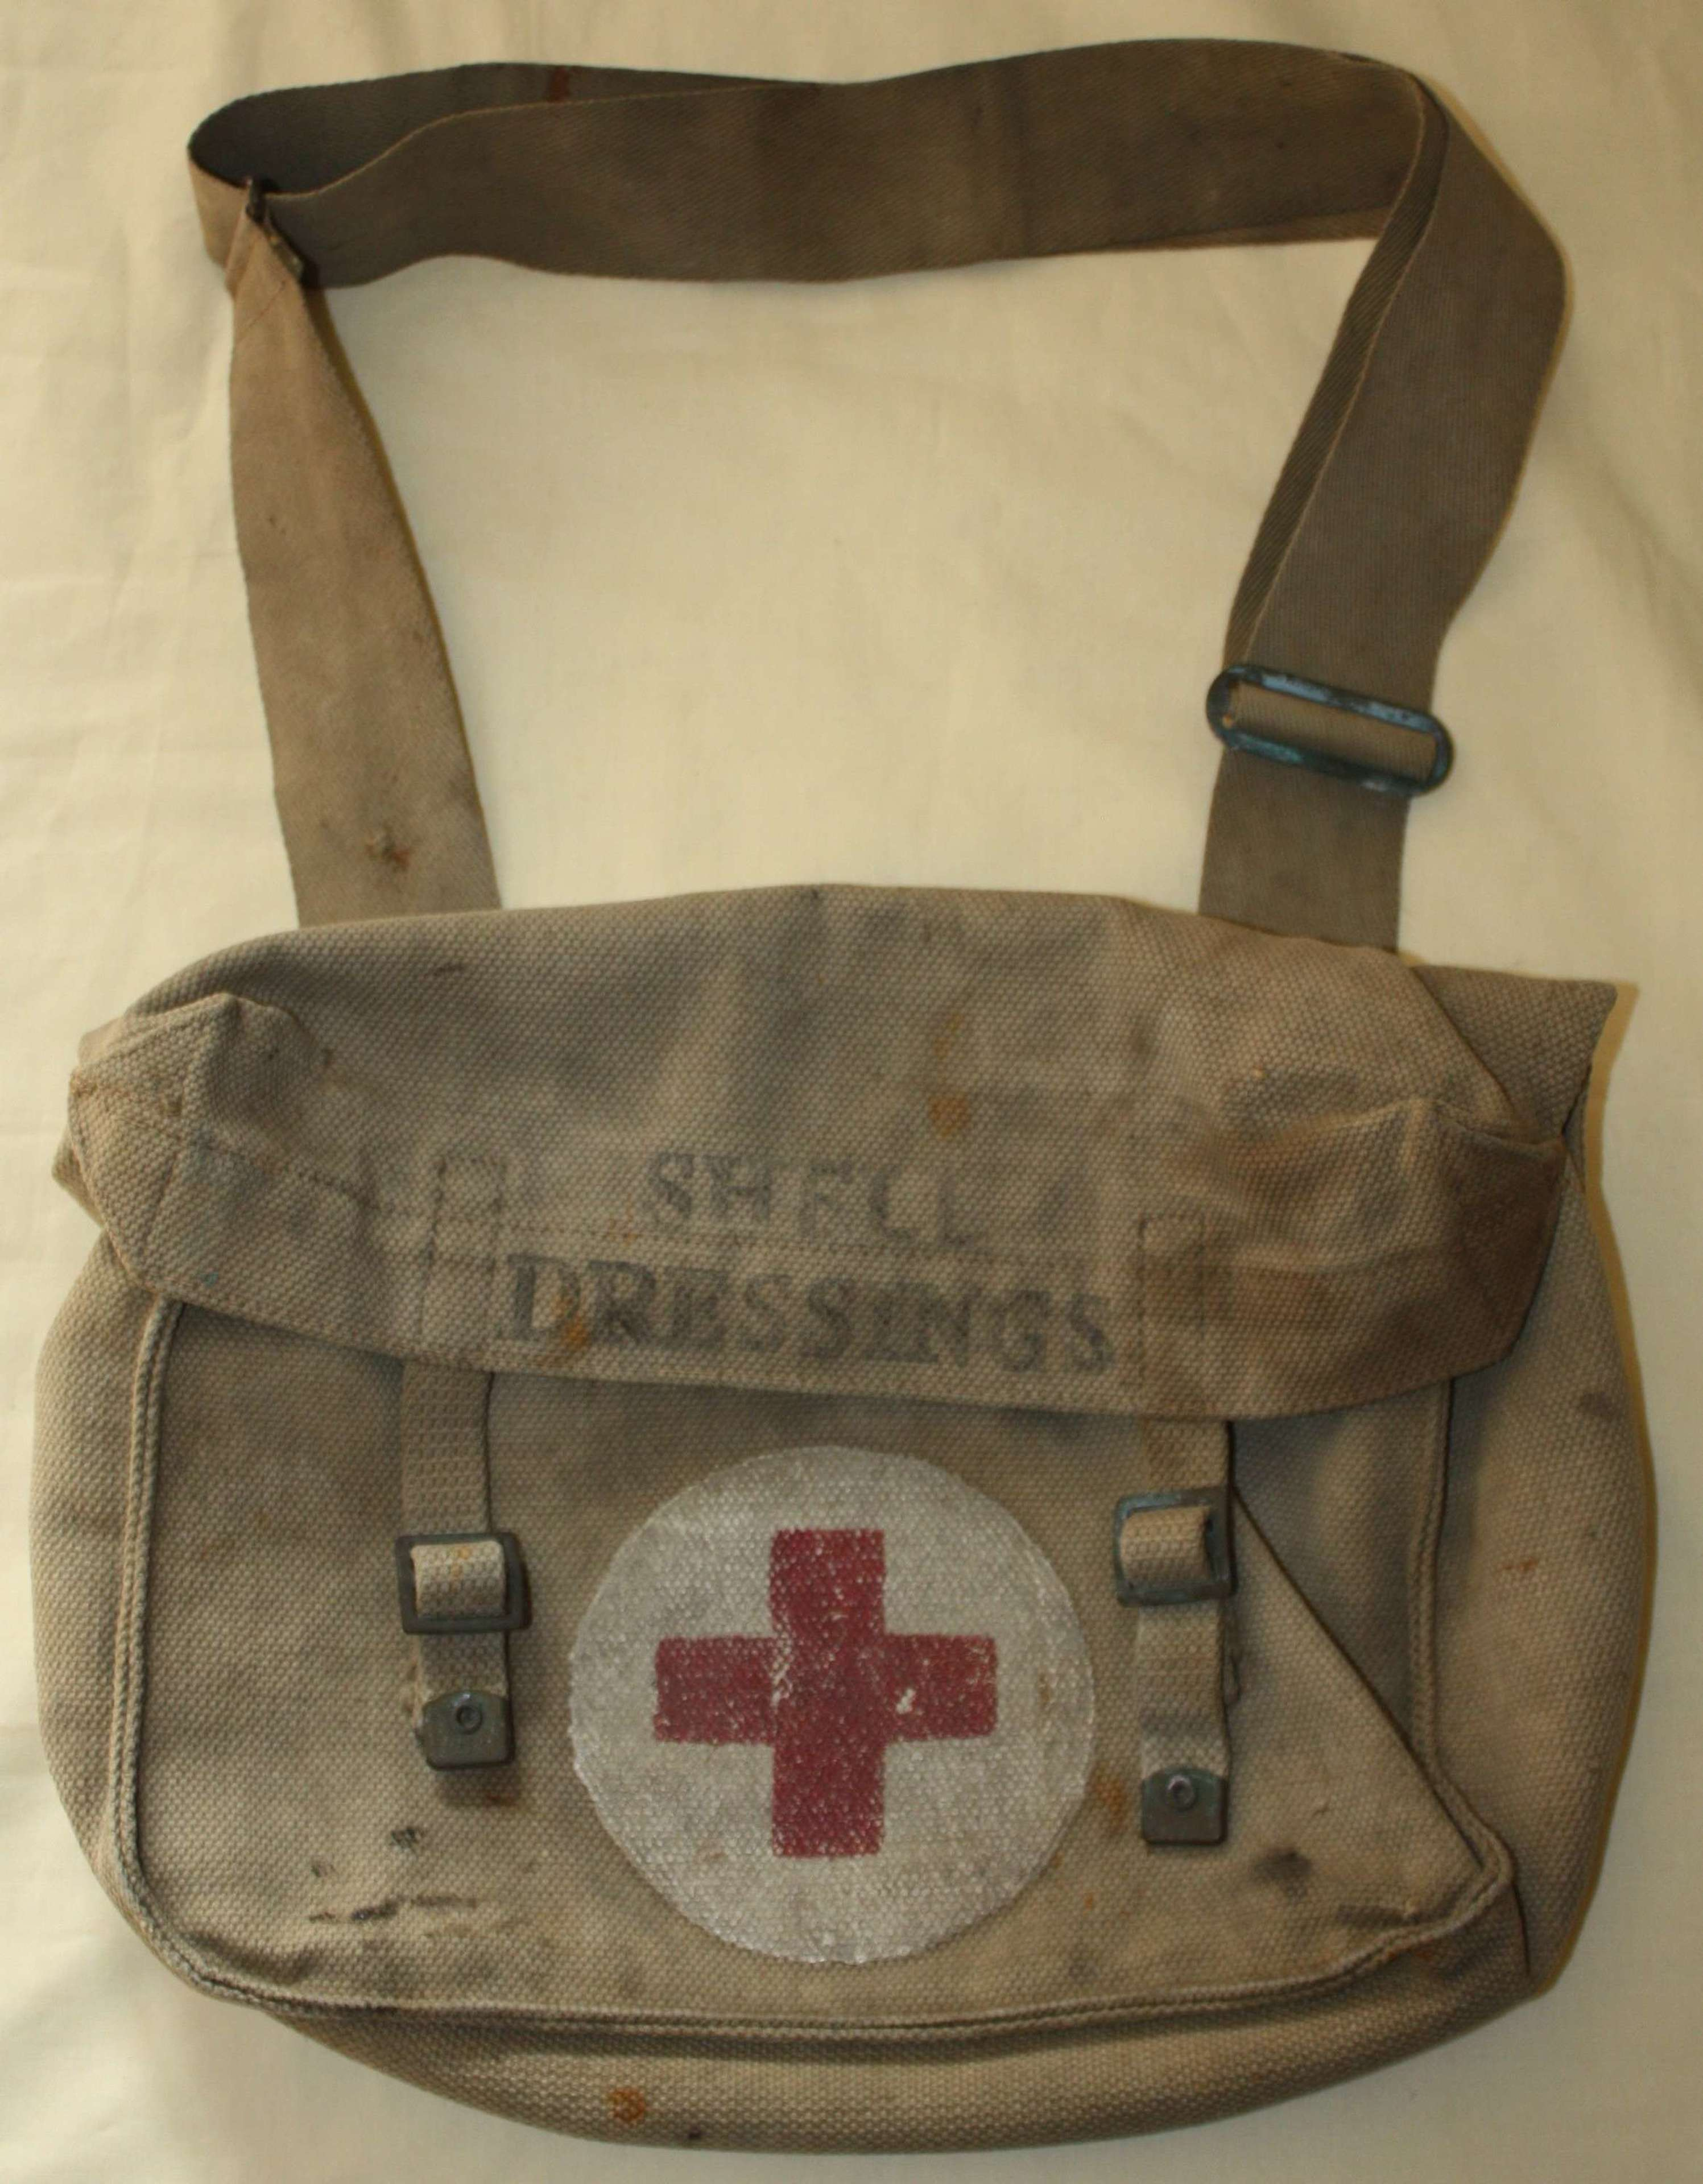 A GOOD EARLY WWII BEF PERIOD SHELL DRESSING MEDICAL BAG 1939 DATED